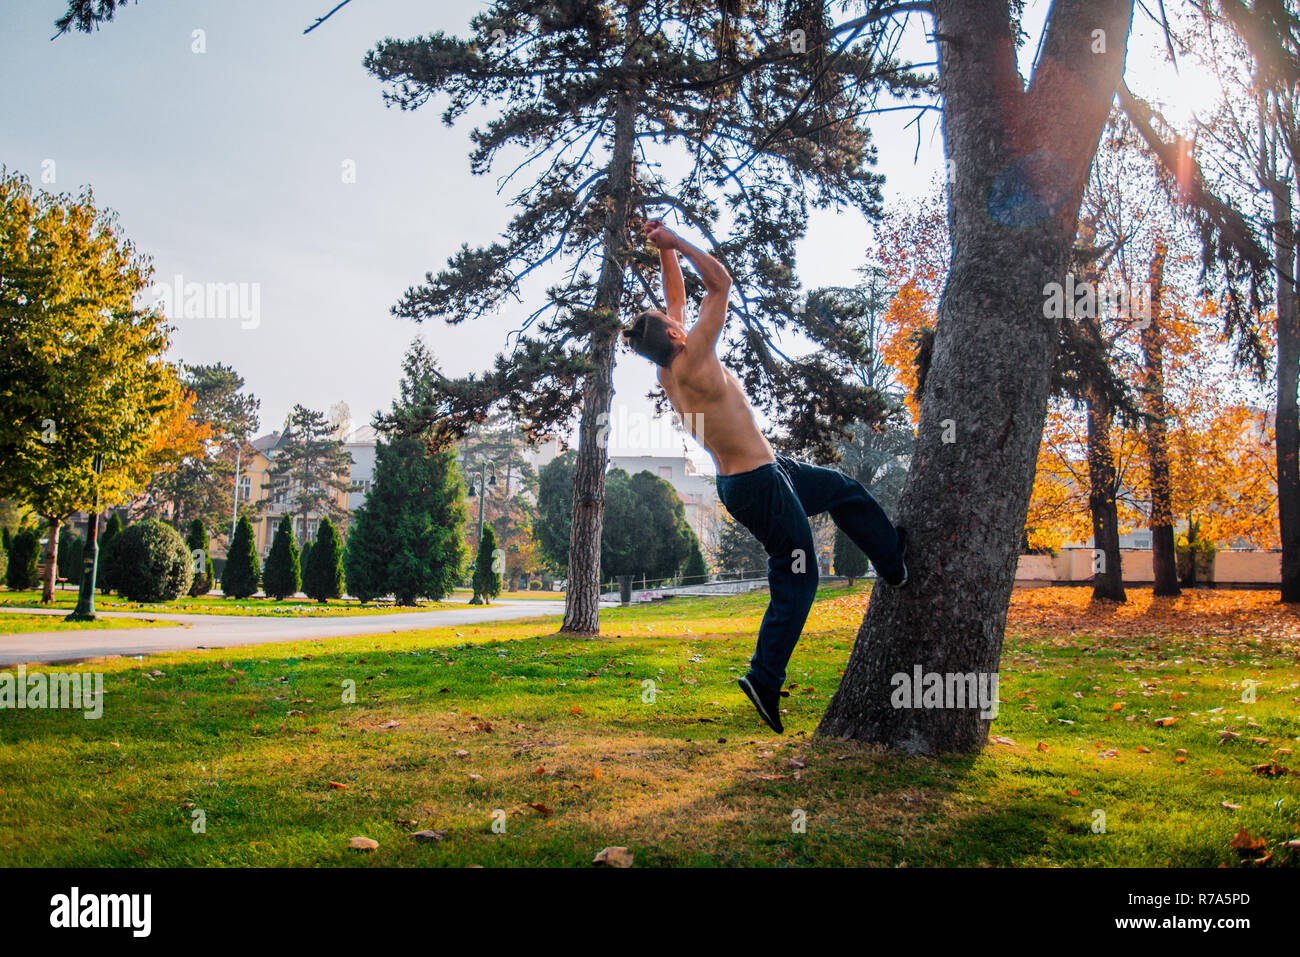 Shirtless traceur practicing parkour exercise while climbing on a tree - Stock Image